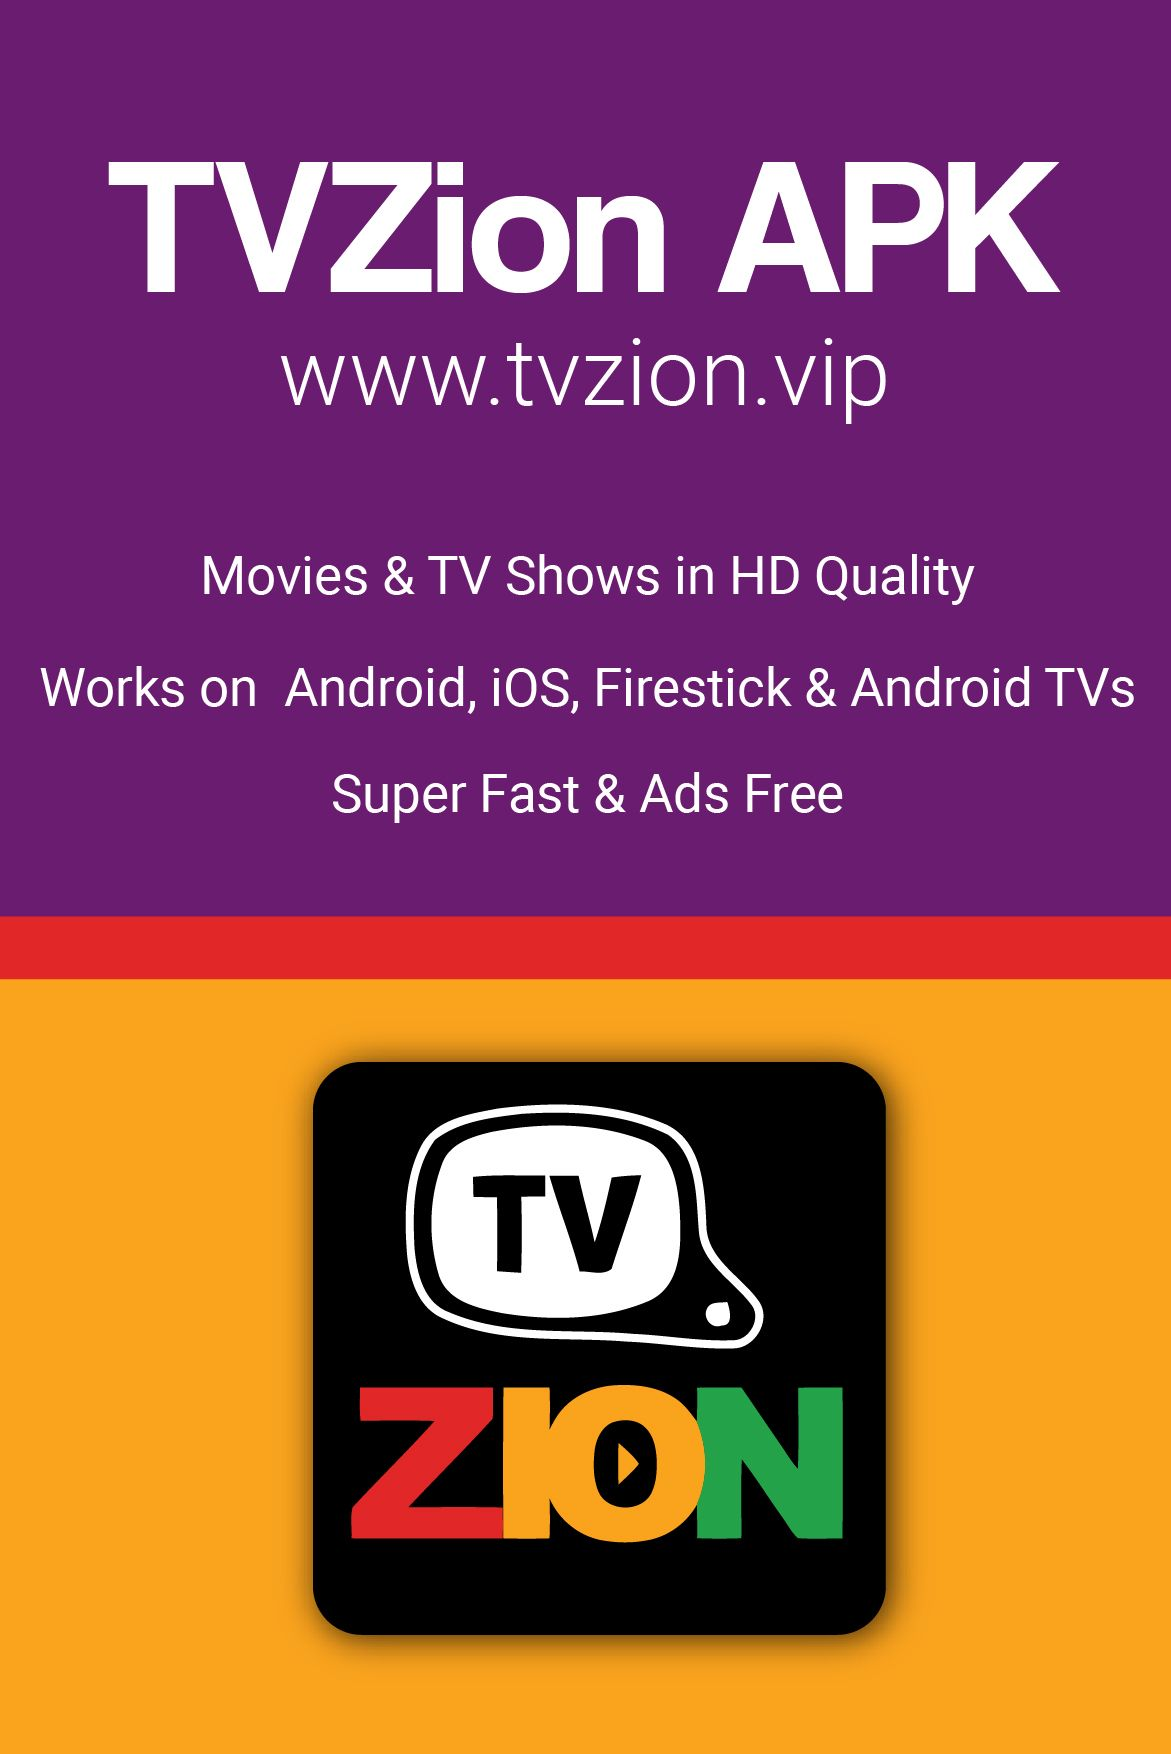 You can install the application on Android, iOS, Firestick